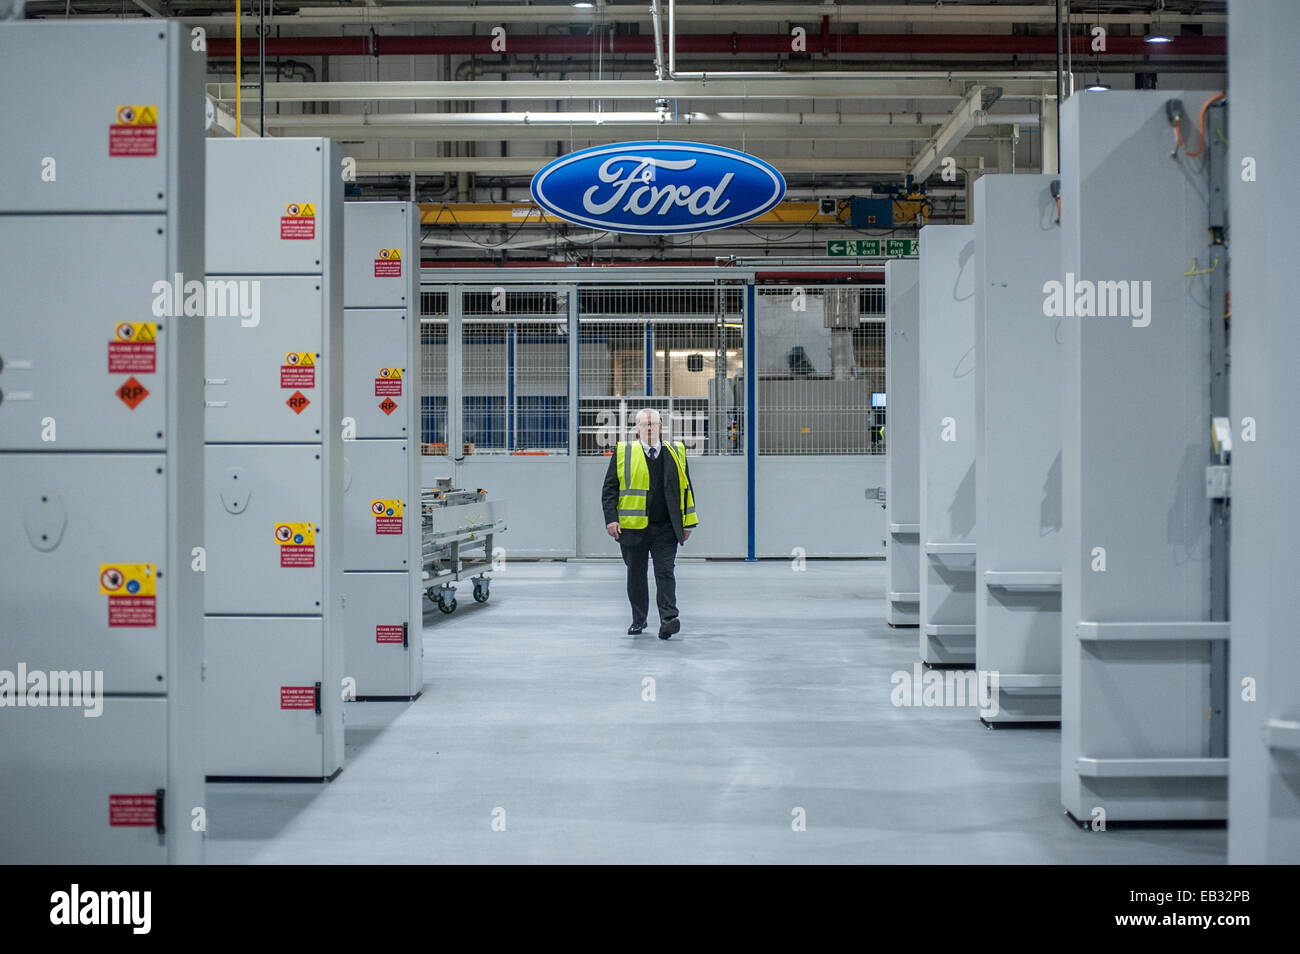 London, UK. 25th November, 2014. An employee of Ford Motor Co Ltd in Dagenham walks next to the  the assembly line - Stock Image